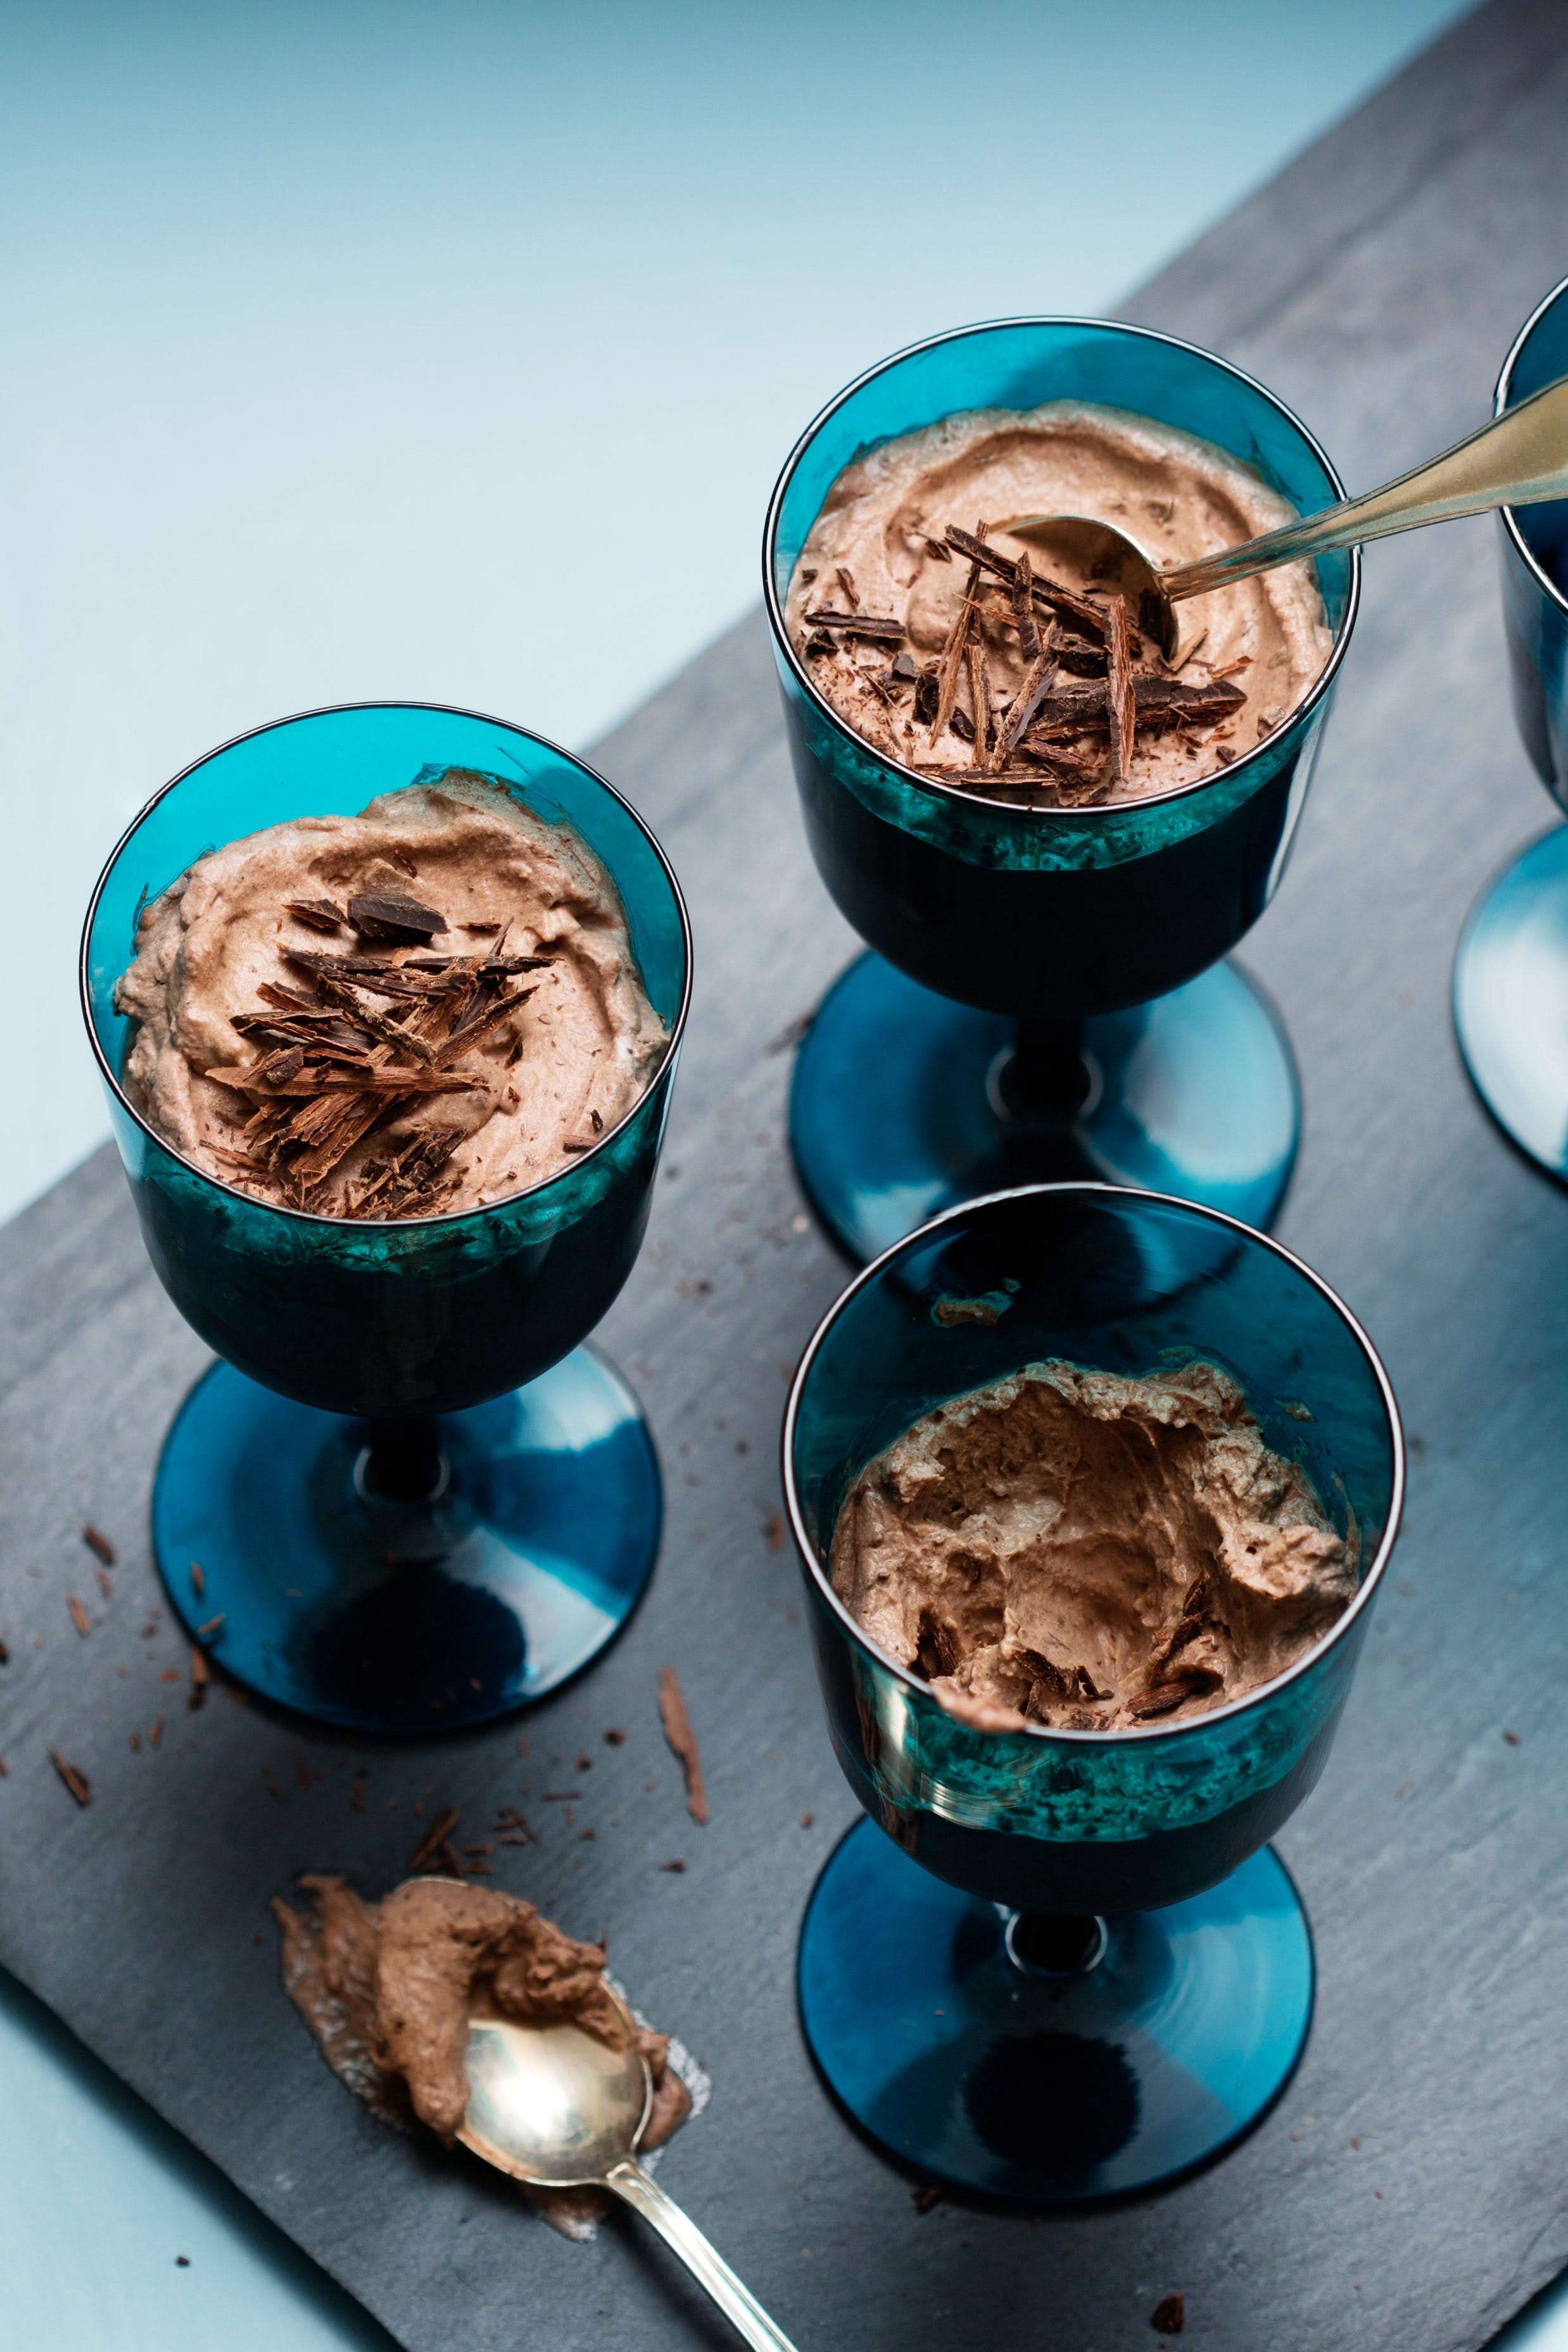 Low-carb chocolate mousse